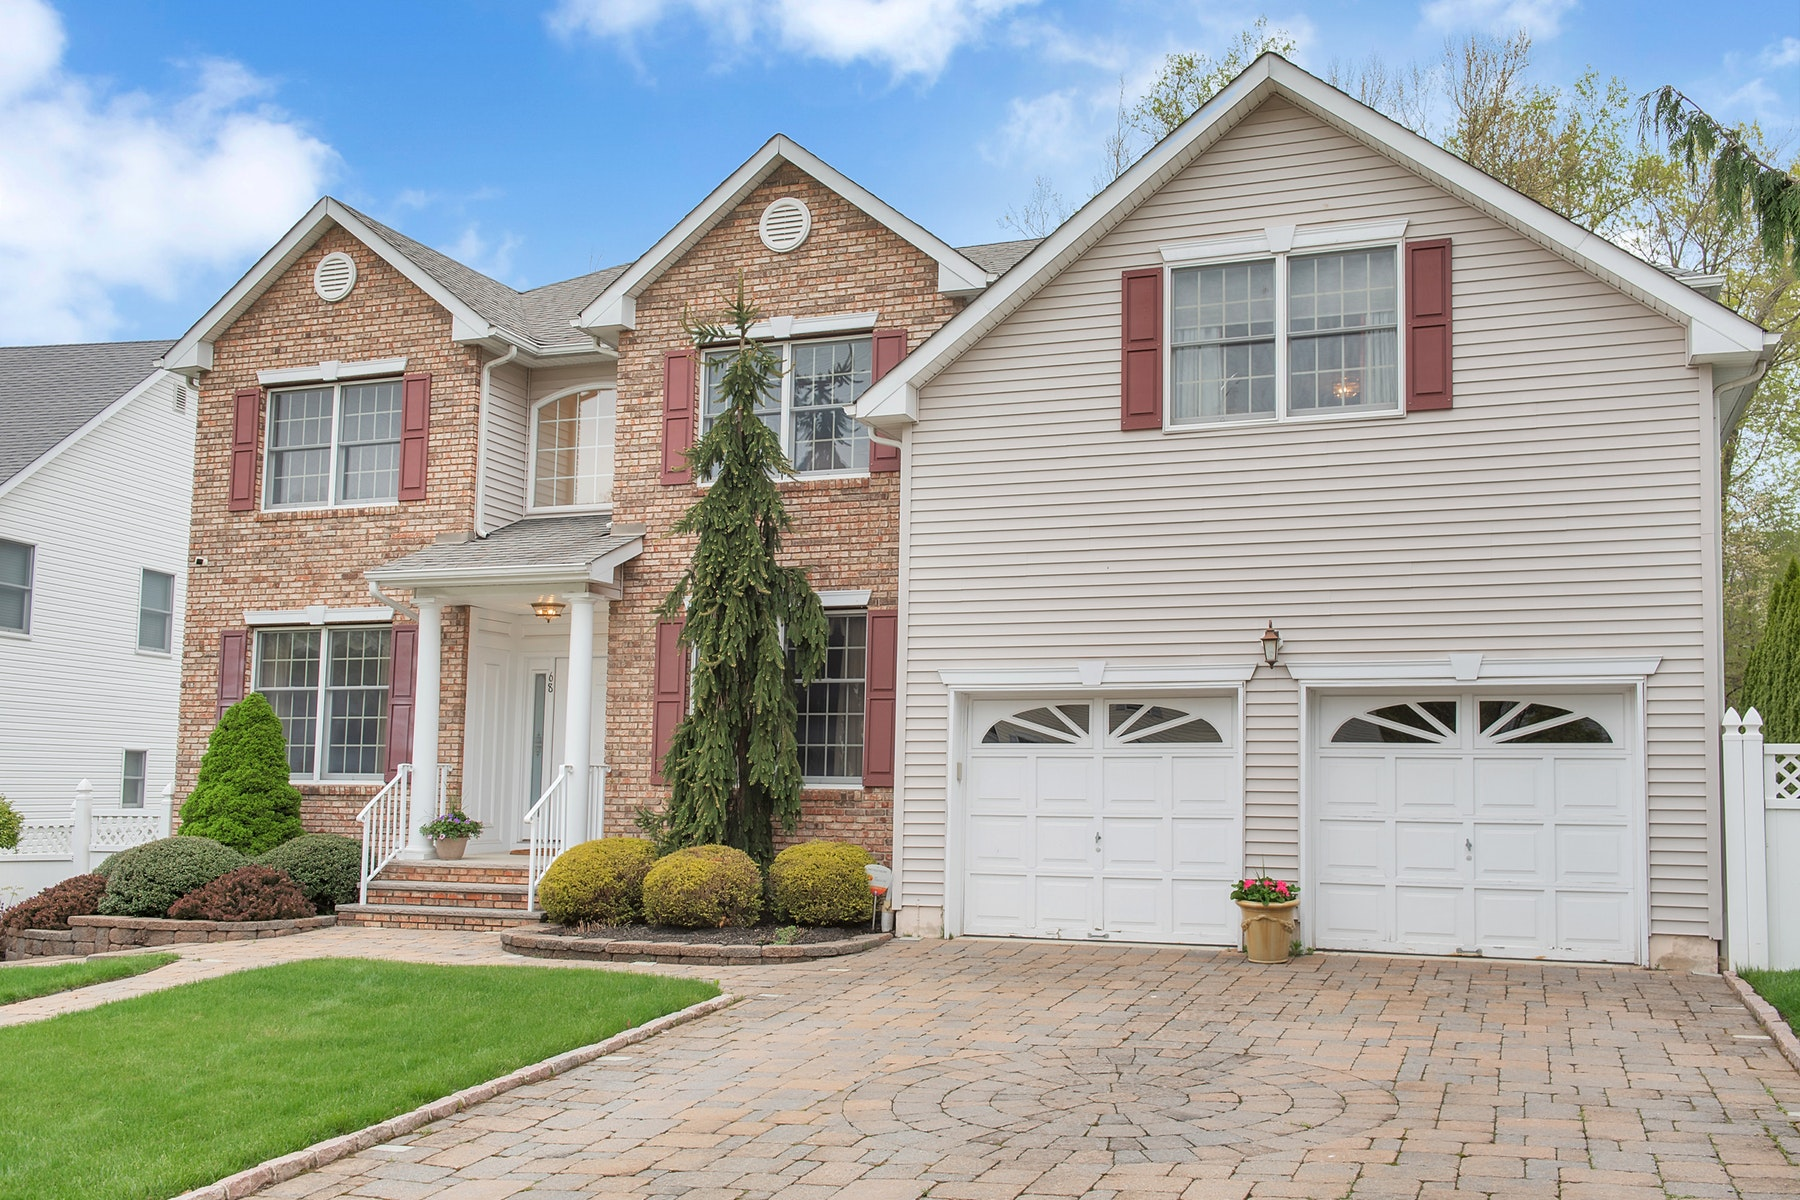 Single Family Homes for Active at Stunning Colonial 68 Terrace Avenue West Orange, New Jersey 07052 United States